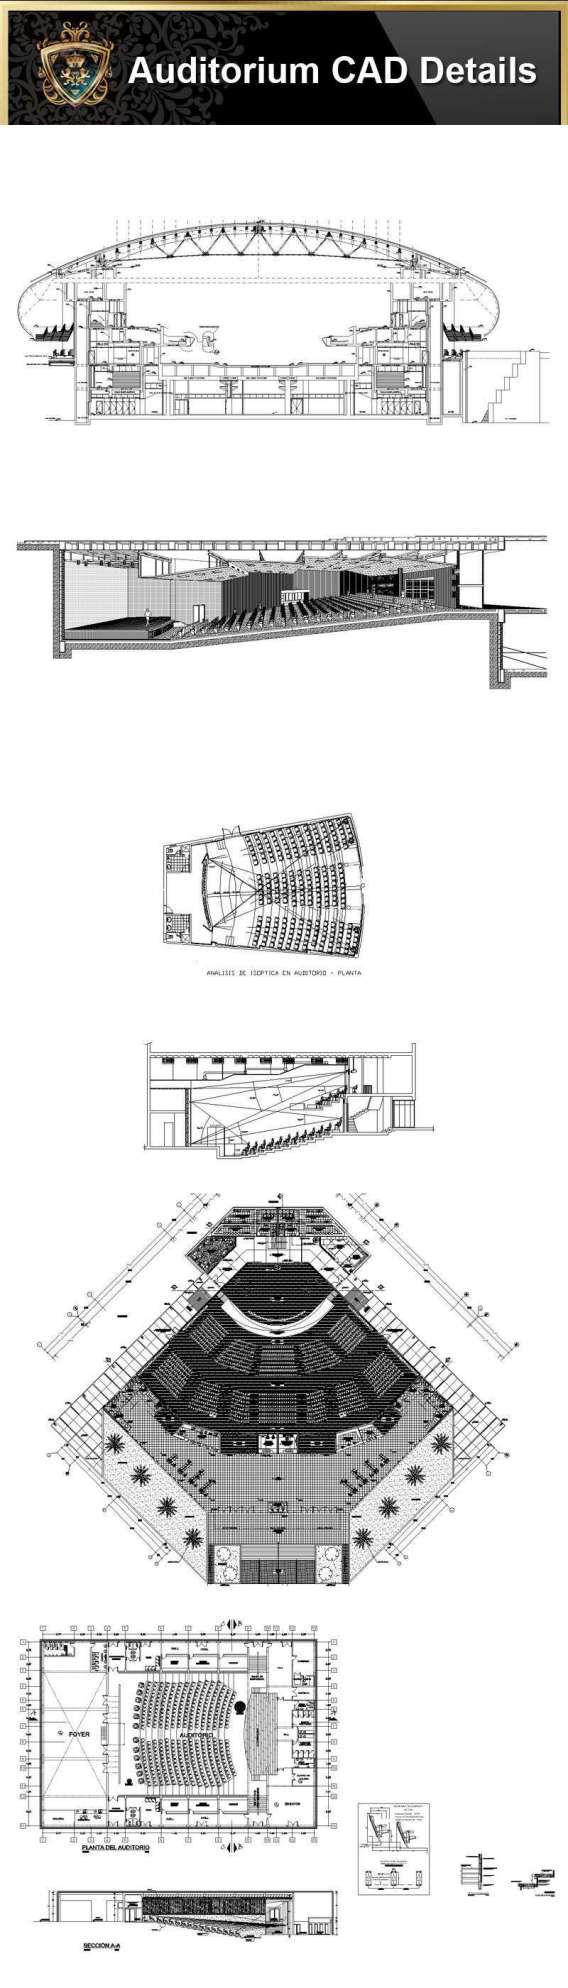 Auditorium Design,Autocad Blocks,AuditoriumDetails,Auditorium Section,Auditorium elevation design drawings